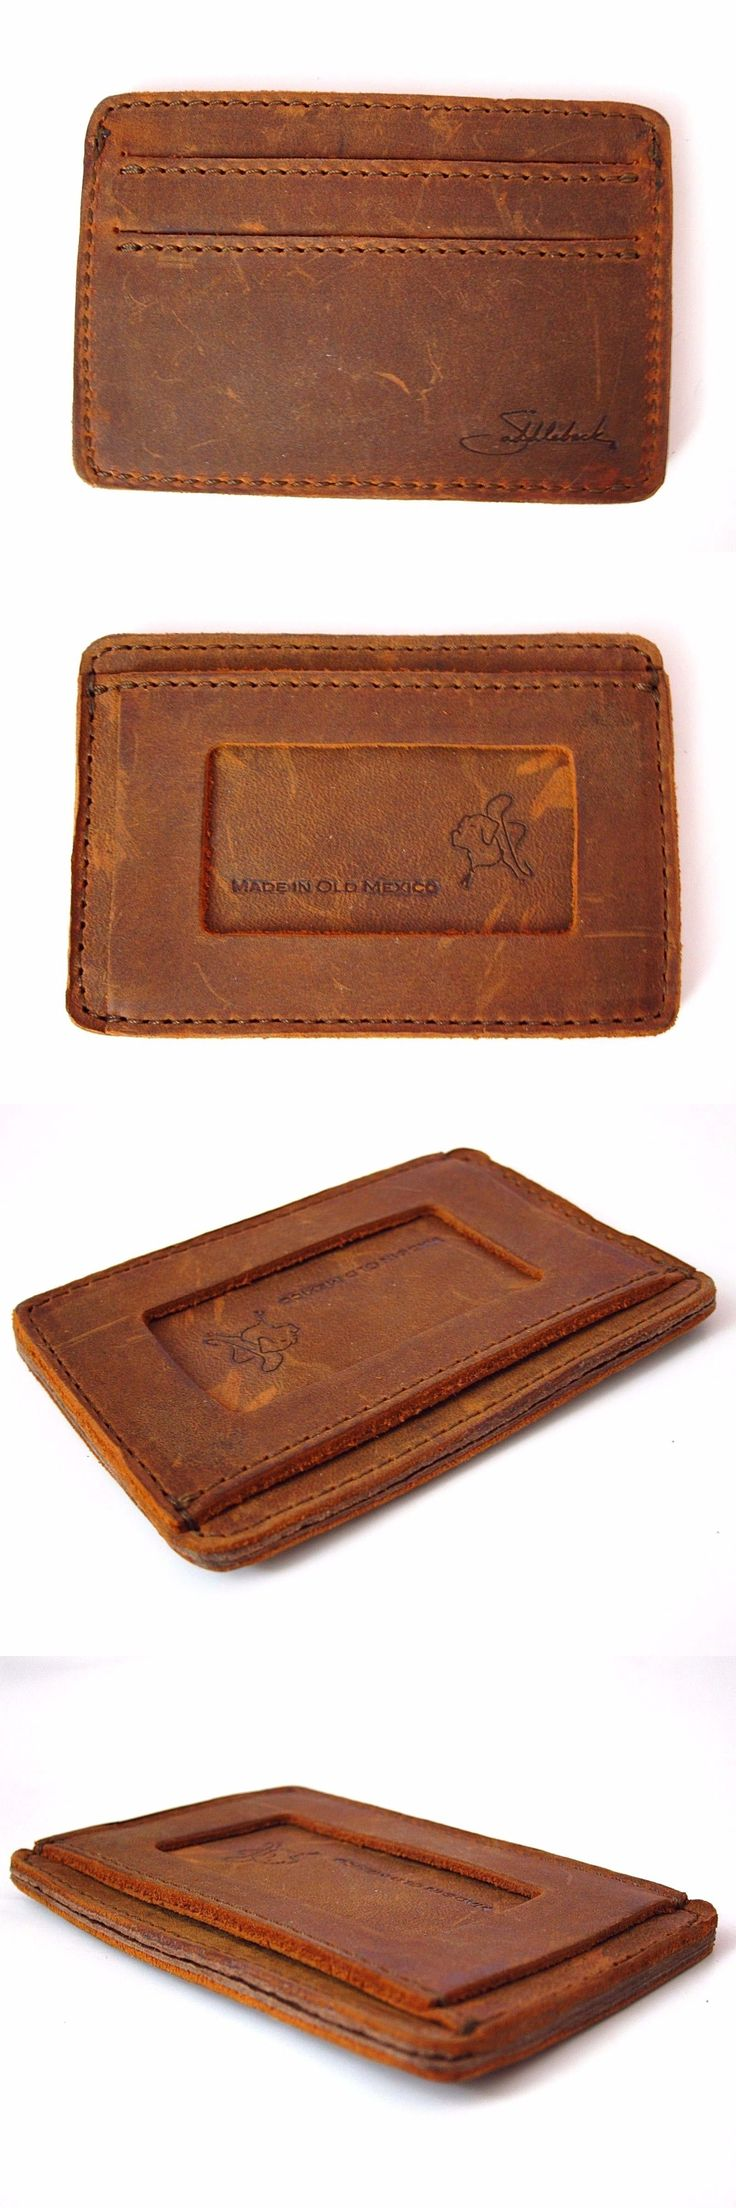 Wallets 2996: Saddleback Leather Script Logo Front Pocket Id Wallet Tobacco Vegetable Tanned -> BUY IT NOW ONLY: $99.99 on eBay!